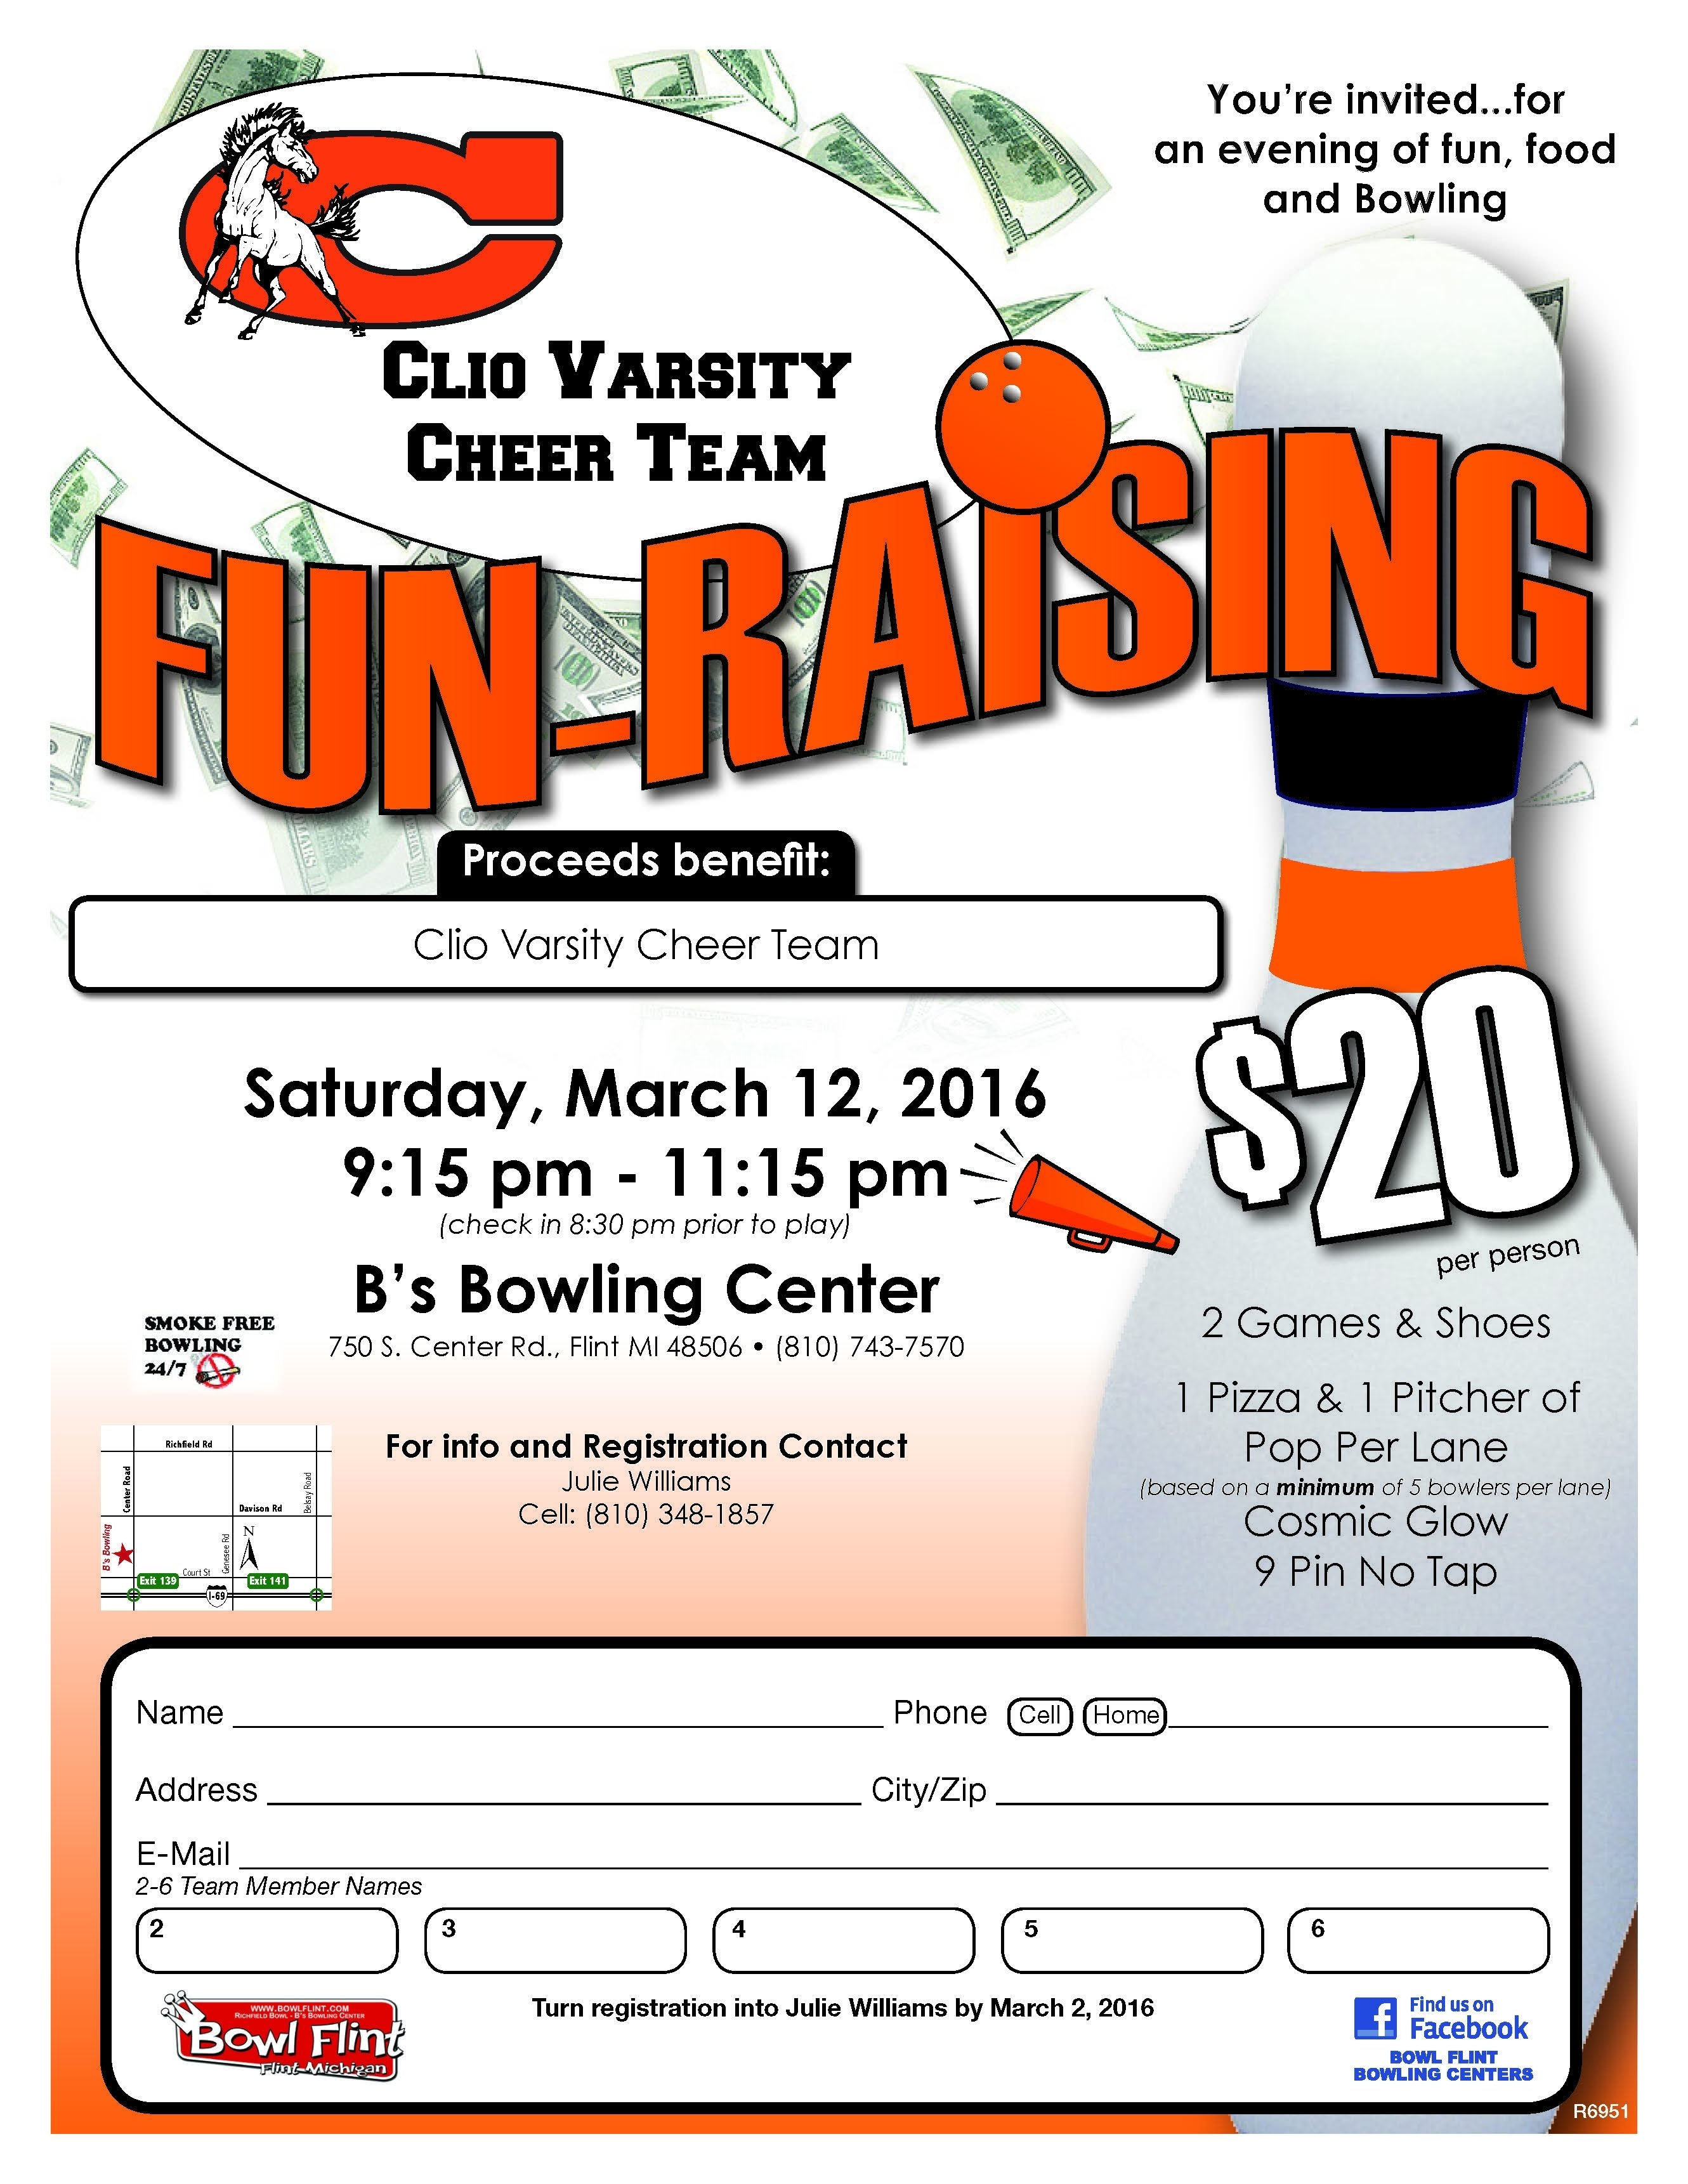 10 Attractive Fundraising Ideas For Softball Teams bowl a thon flyer google search body pinterest fundraising 1 2020